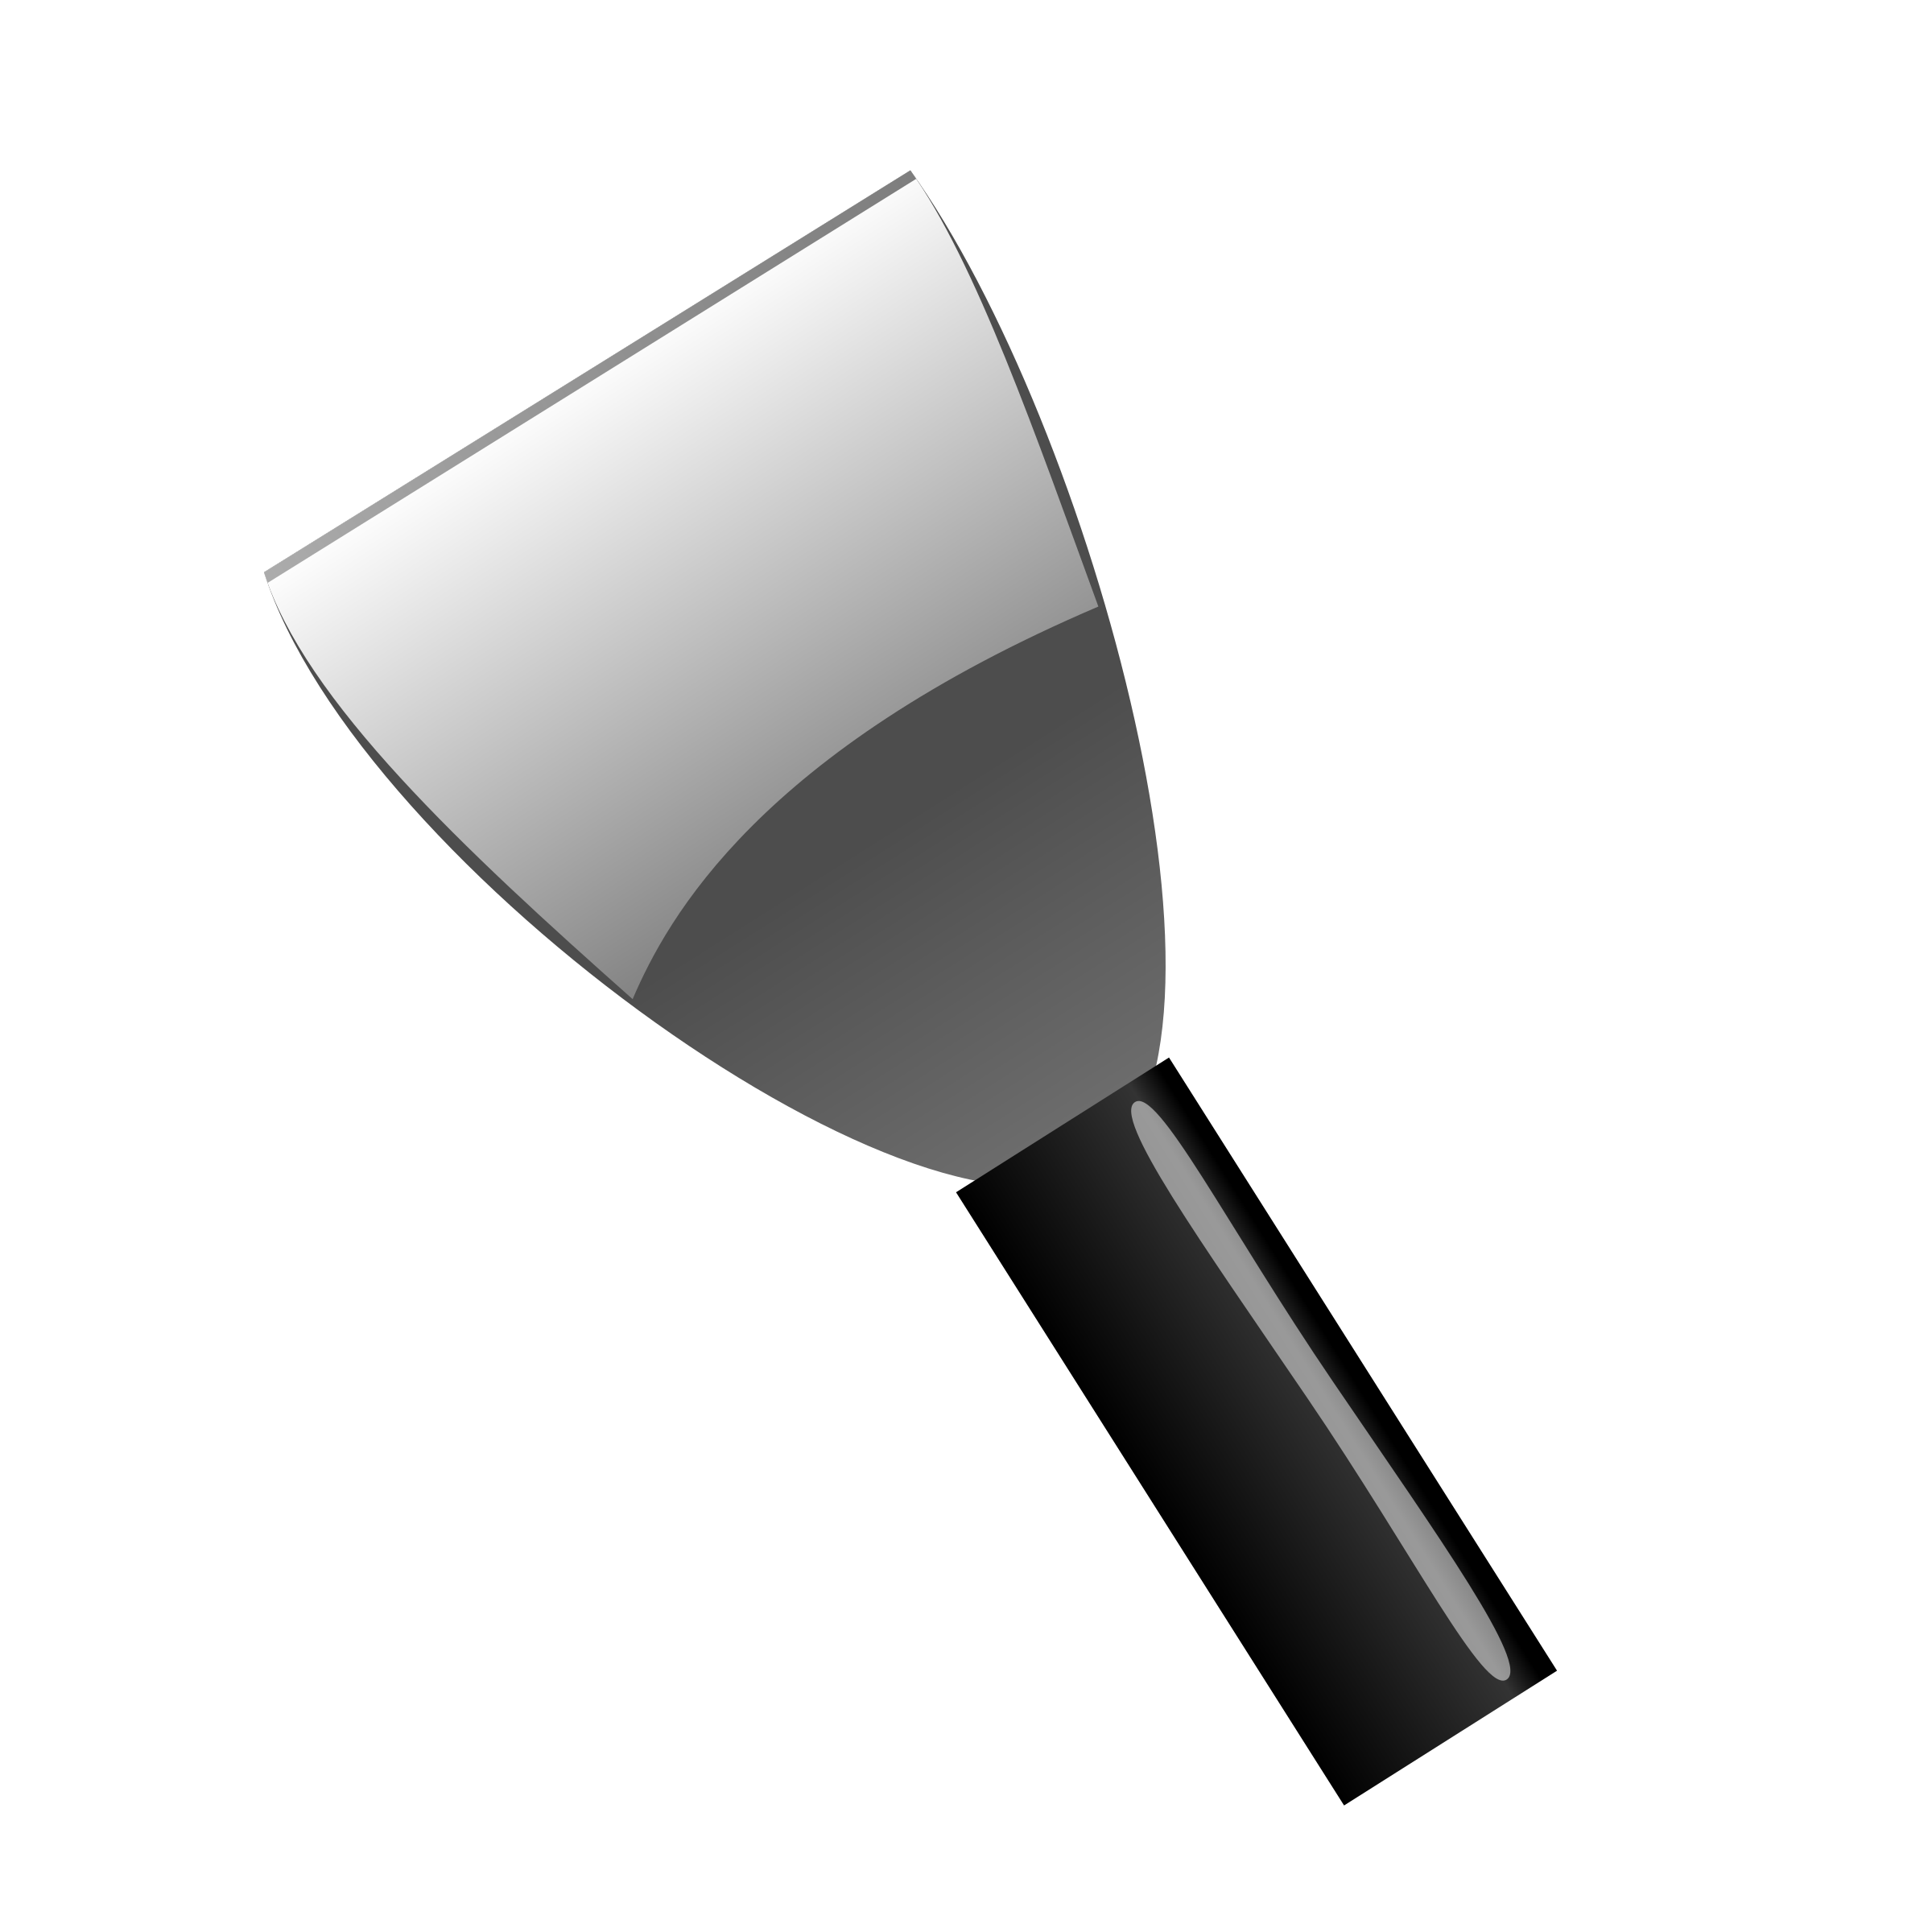 Knife big image png. Playdough clipart putty